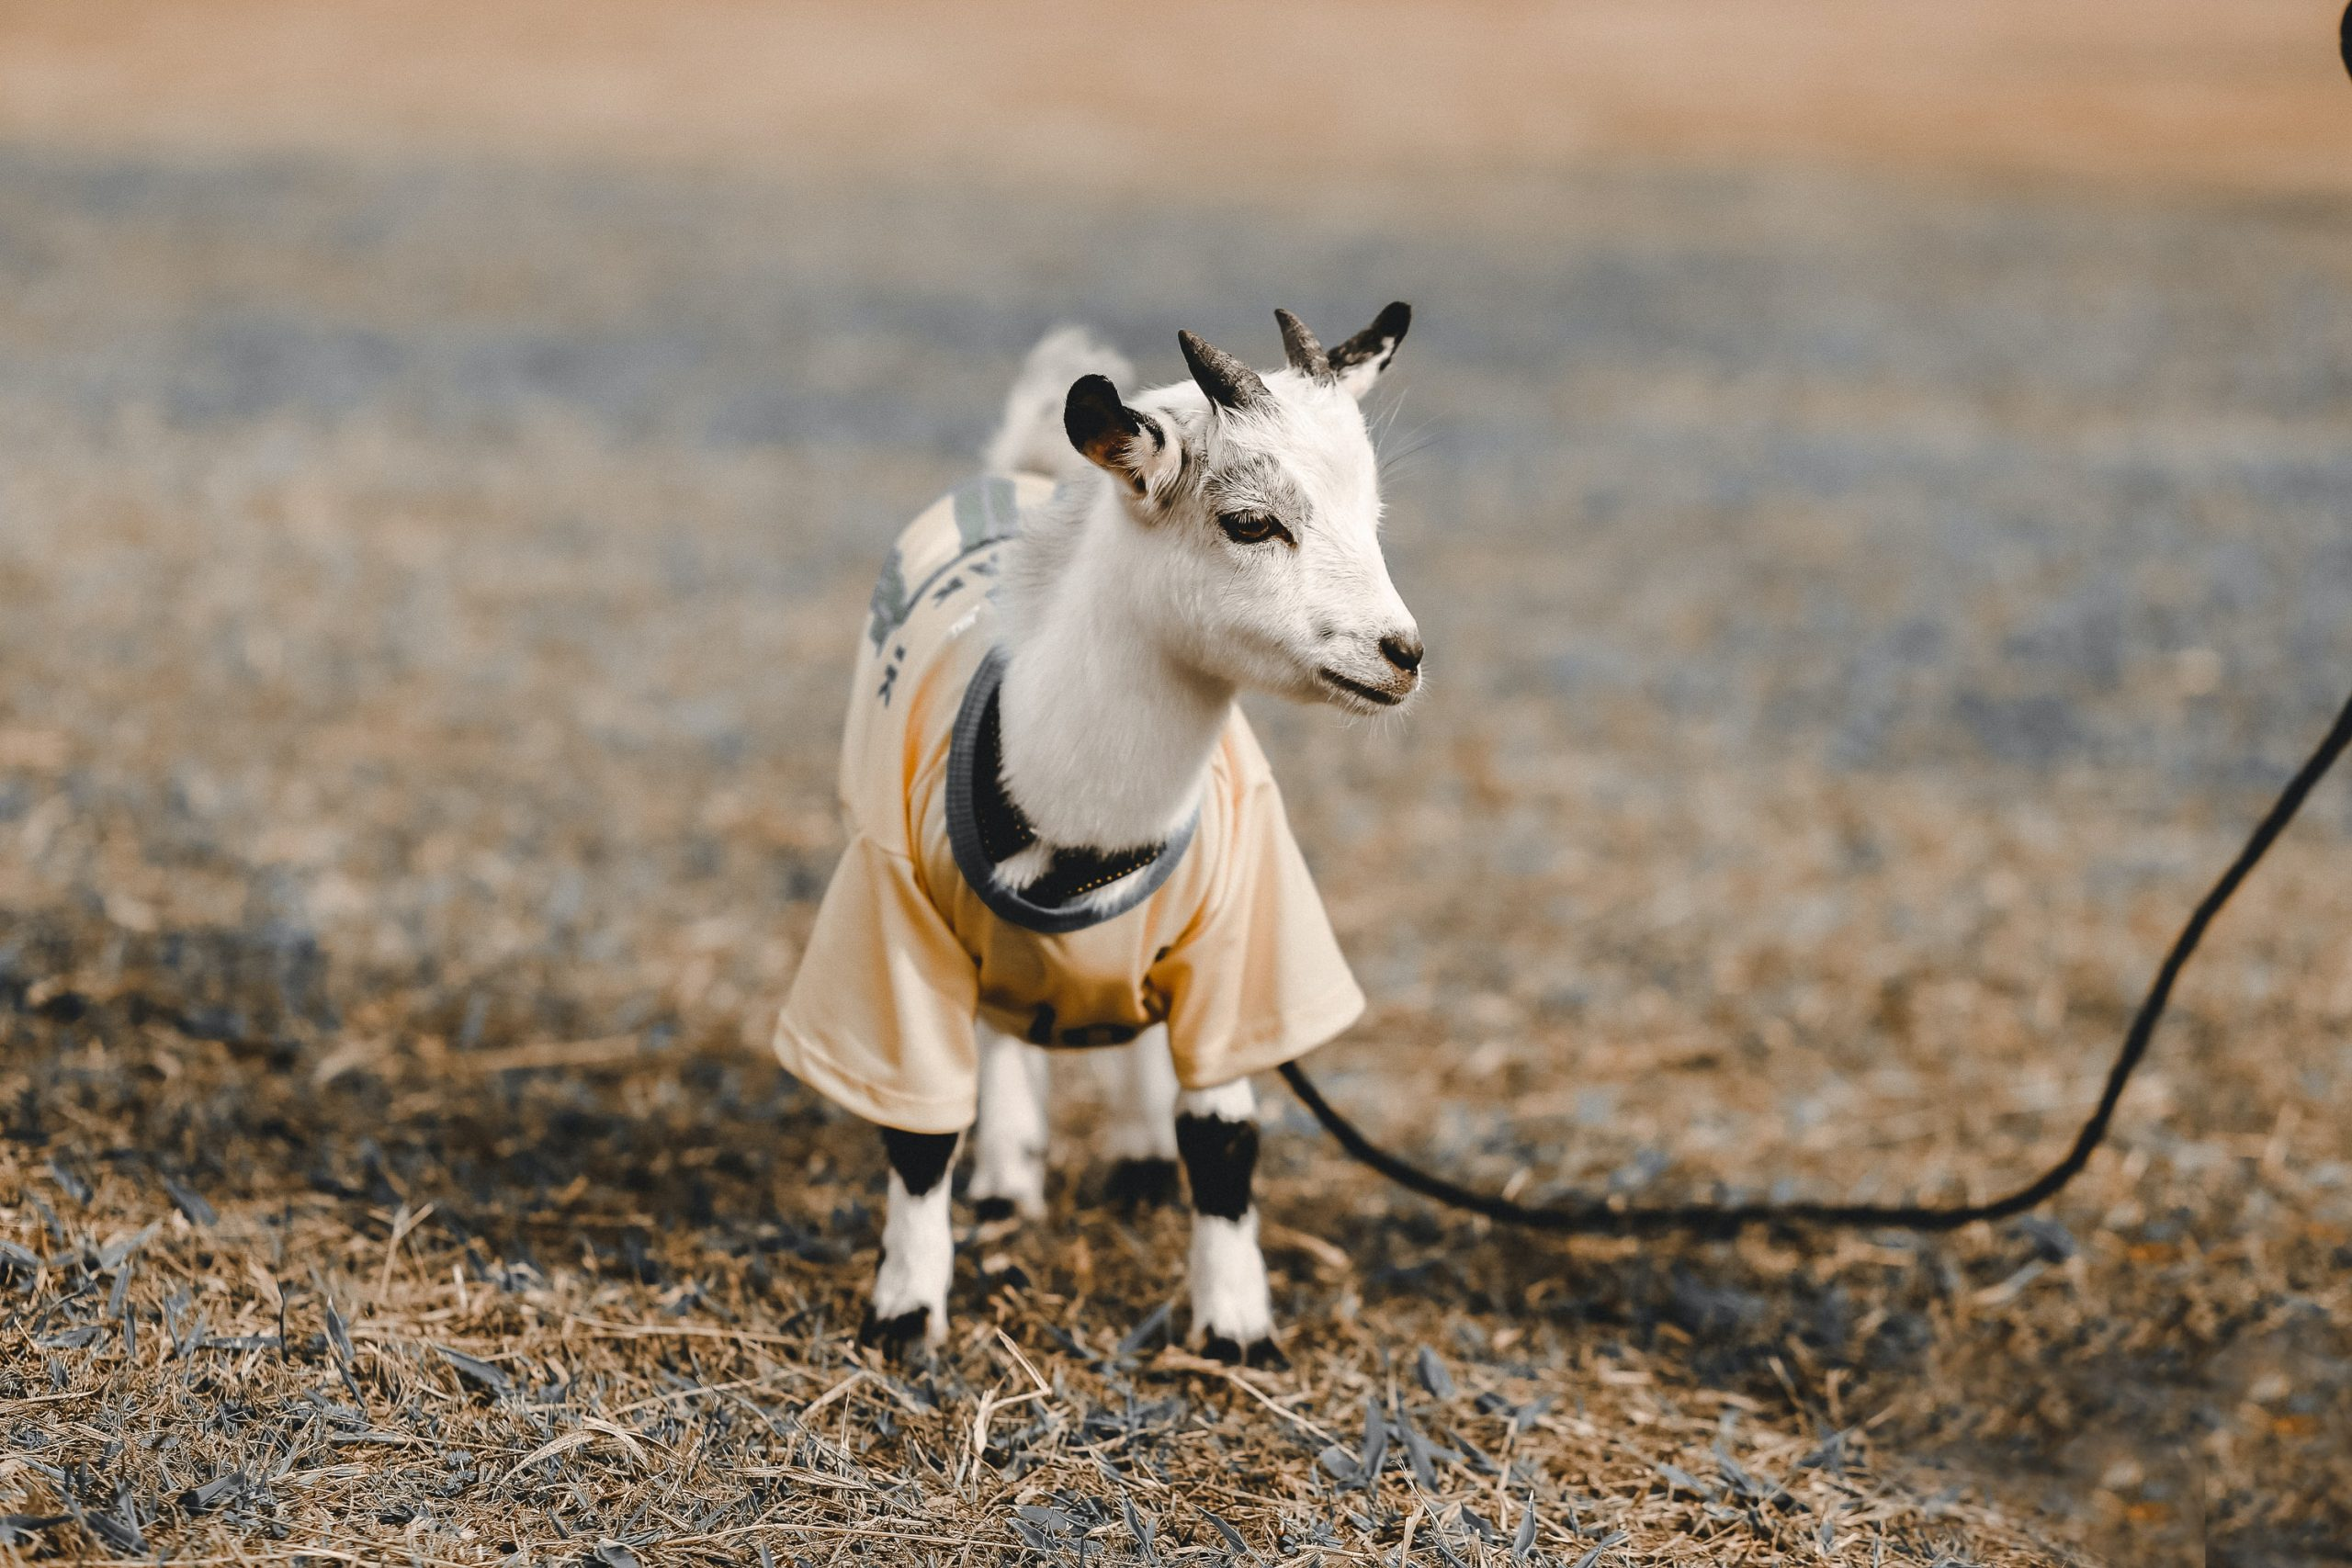 Goat Rising for Beginners